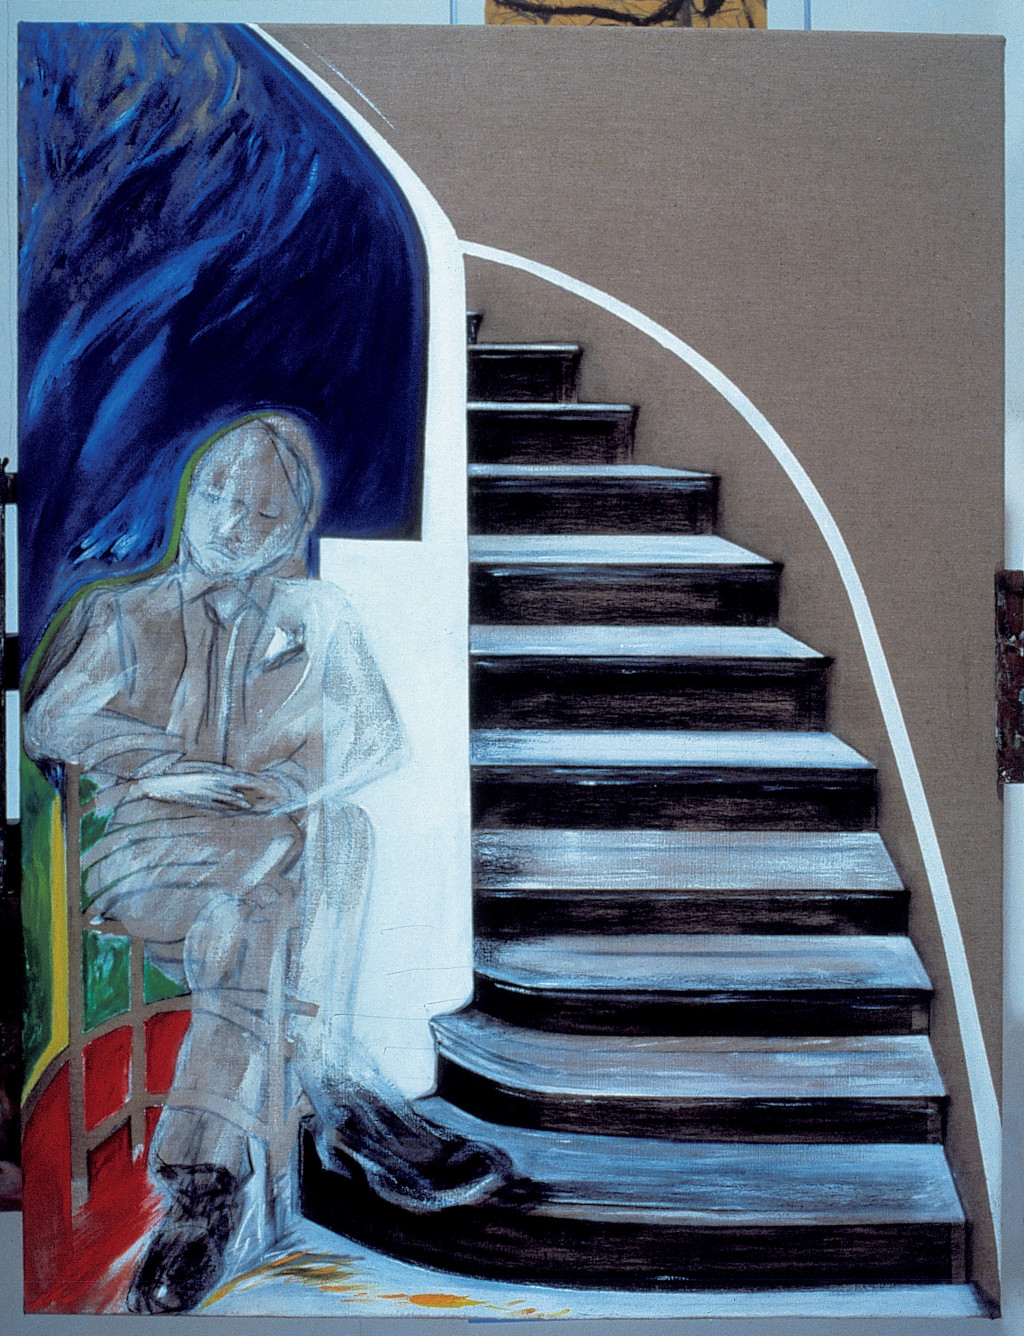 Jacqueline de Jong, 'Upstairs-Downstairs,' 1985. Particuliere collectie. Courtesy de kunstenaar.